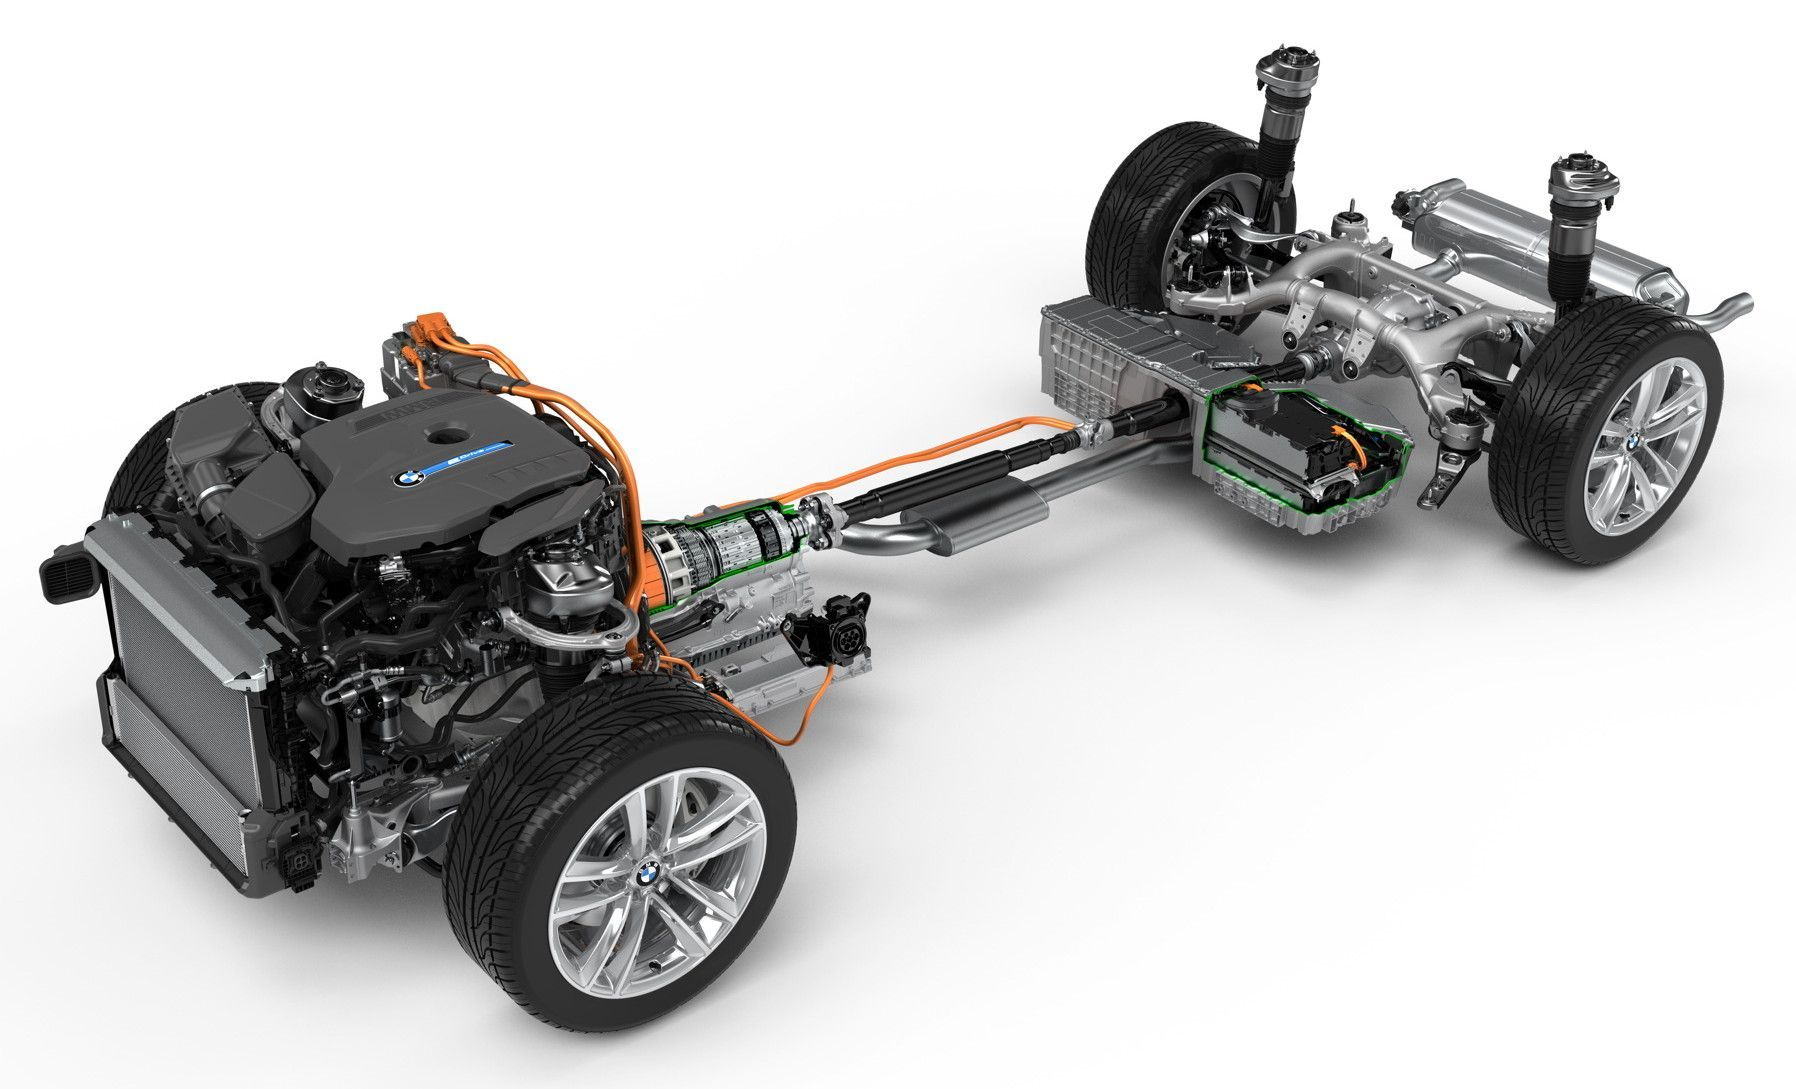 Global Electric Vehicle Powertrain Market Insights Forecast To